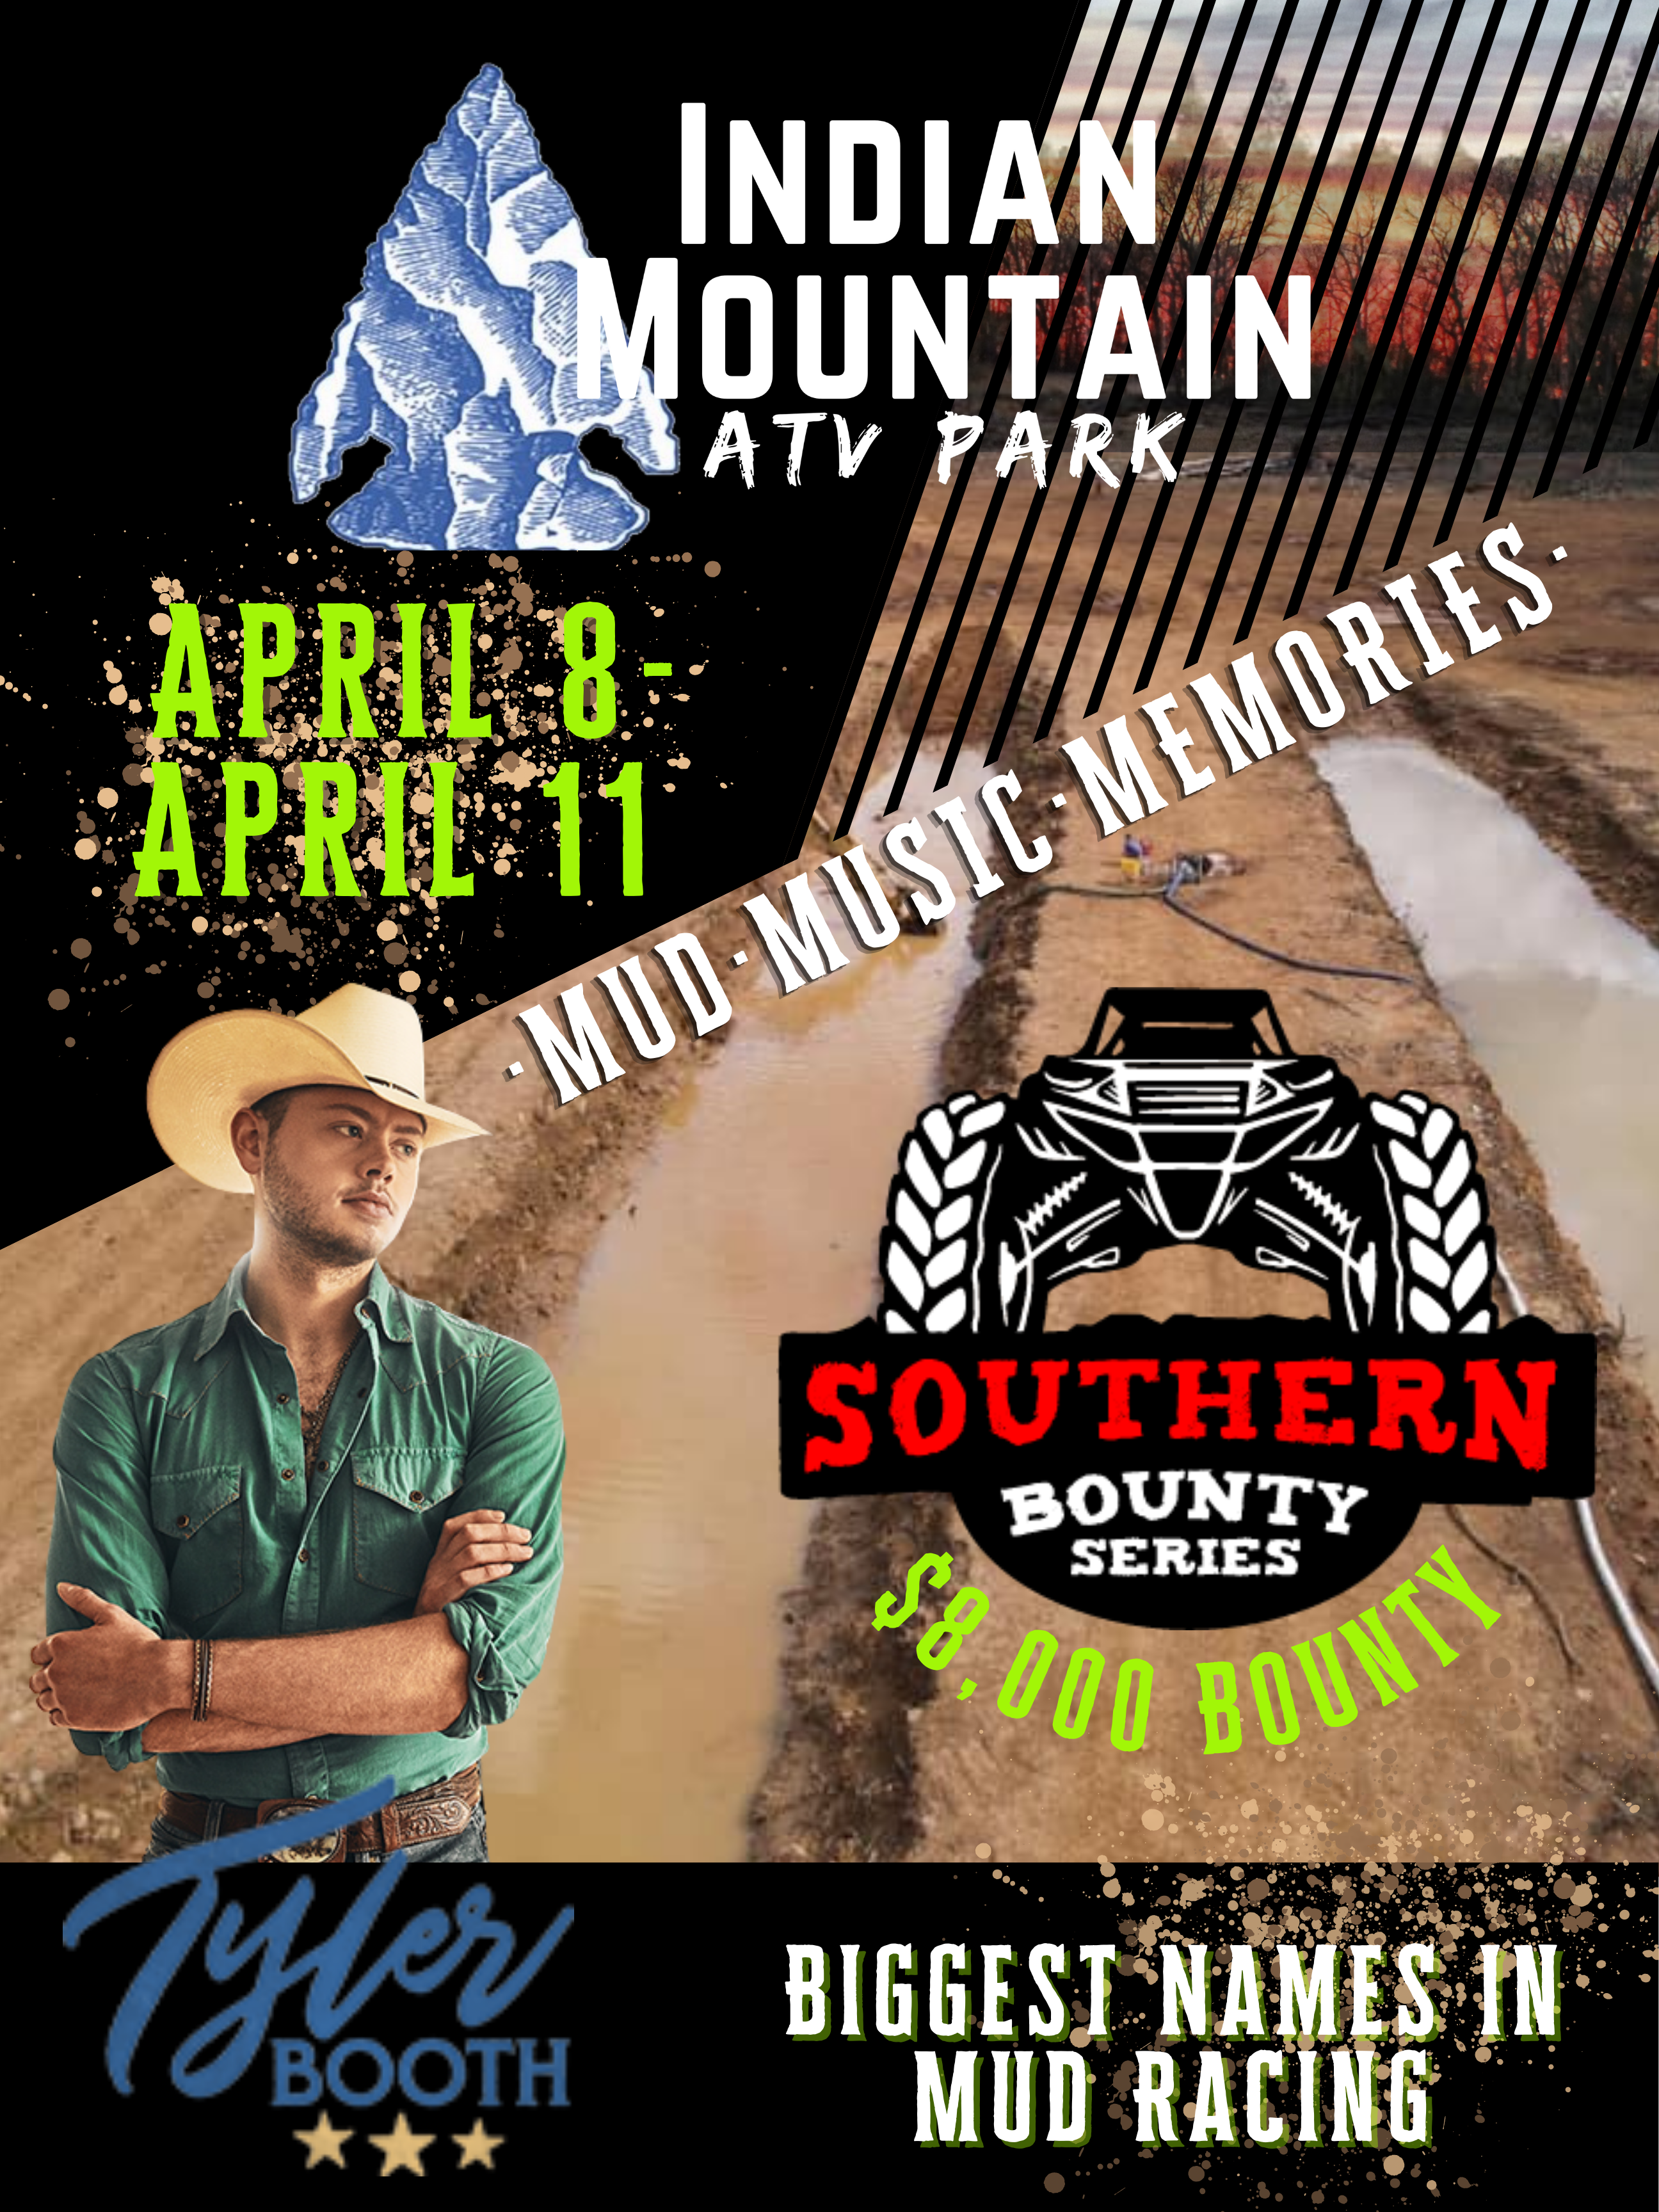 Southern Bounty Series & Tyler Booth at Indian Mountain ATV Park